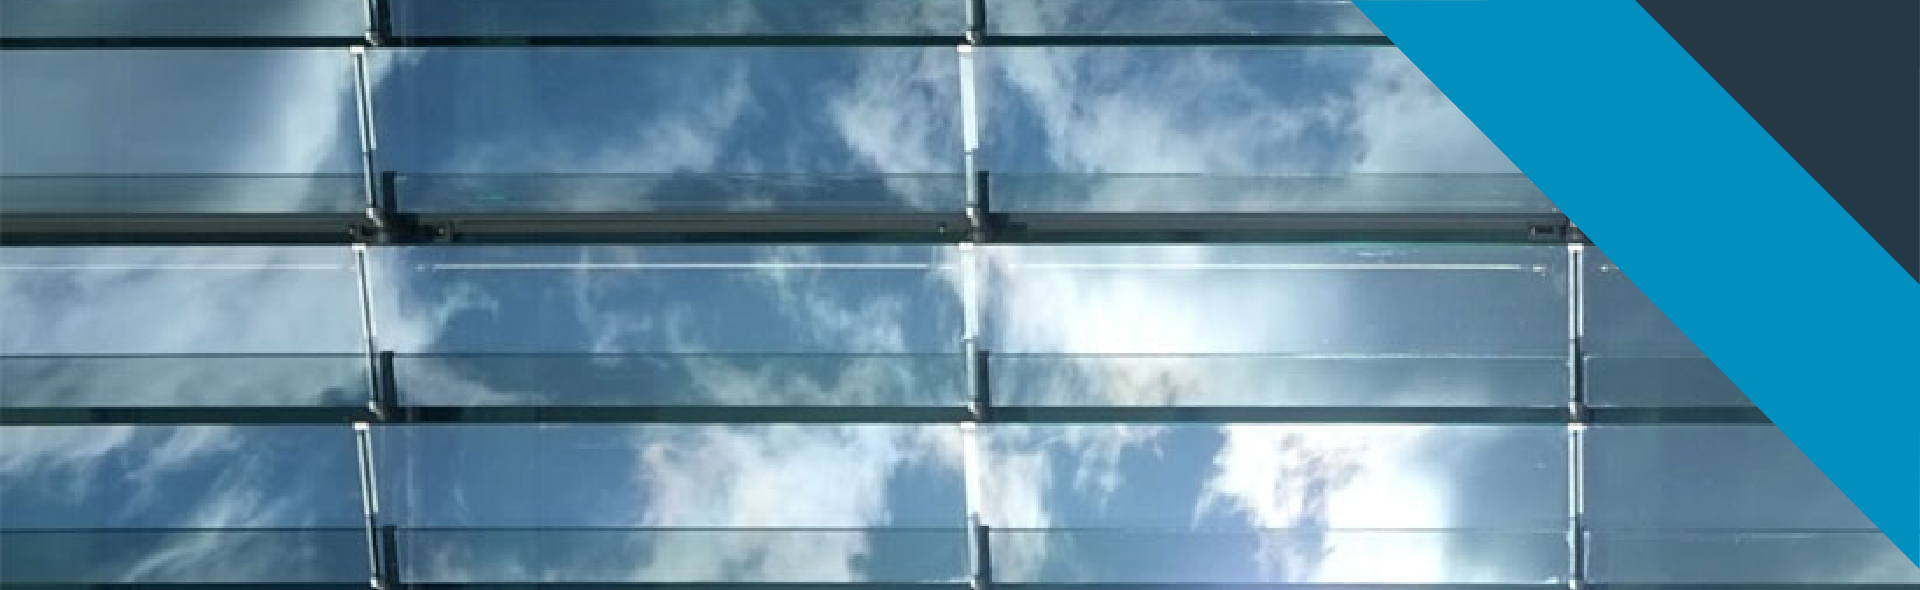 A view of a clouds in the sky through window panes